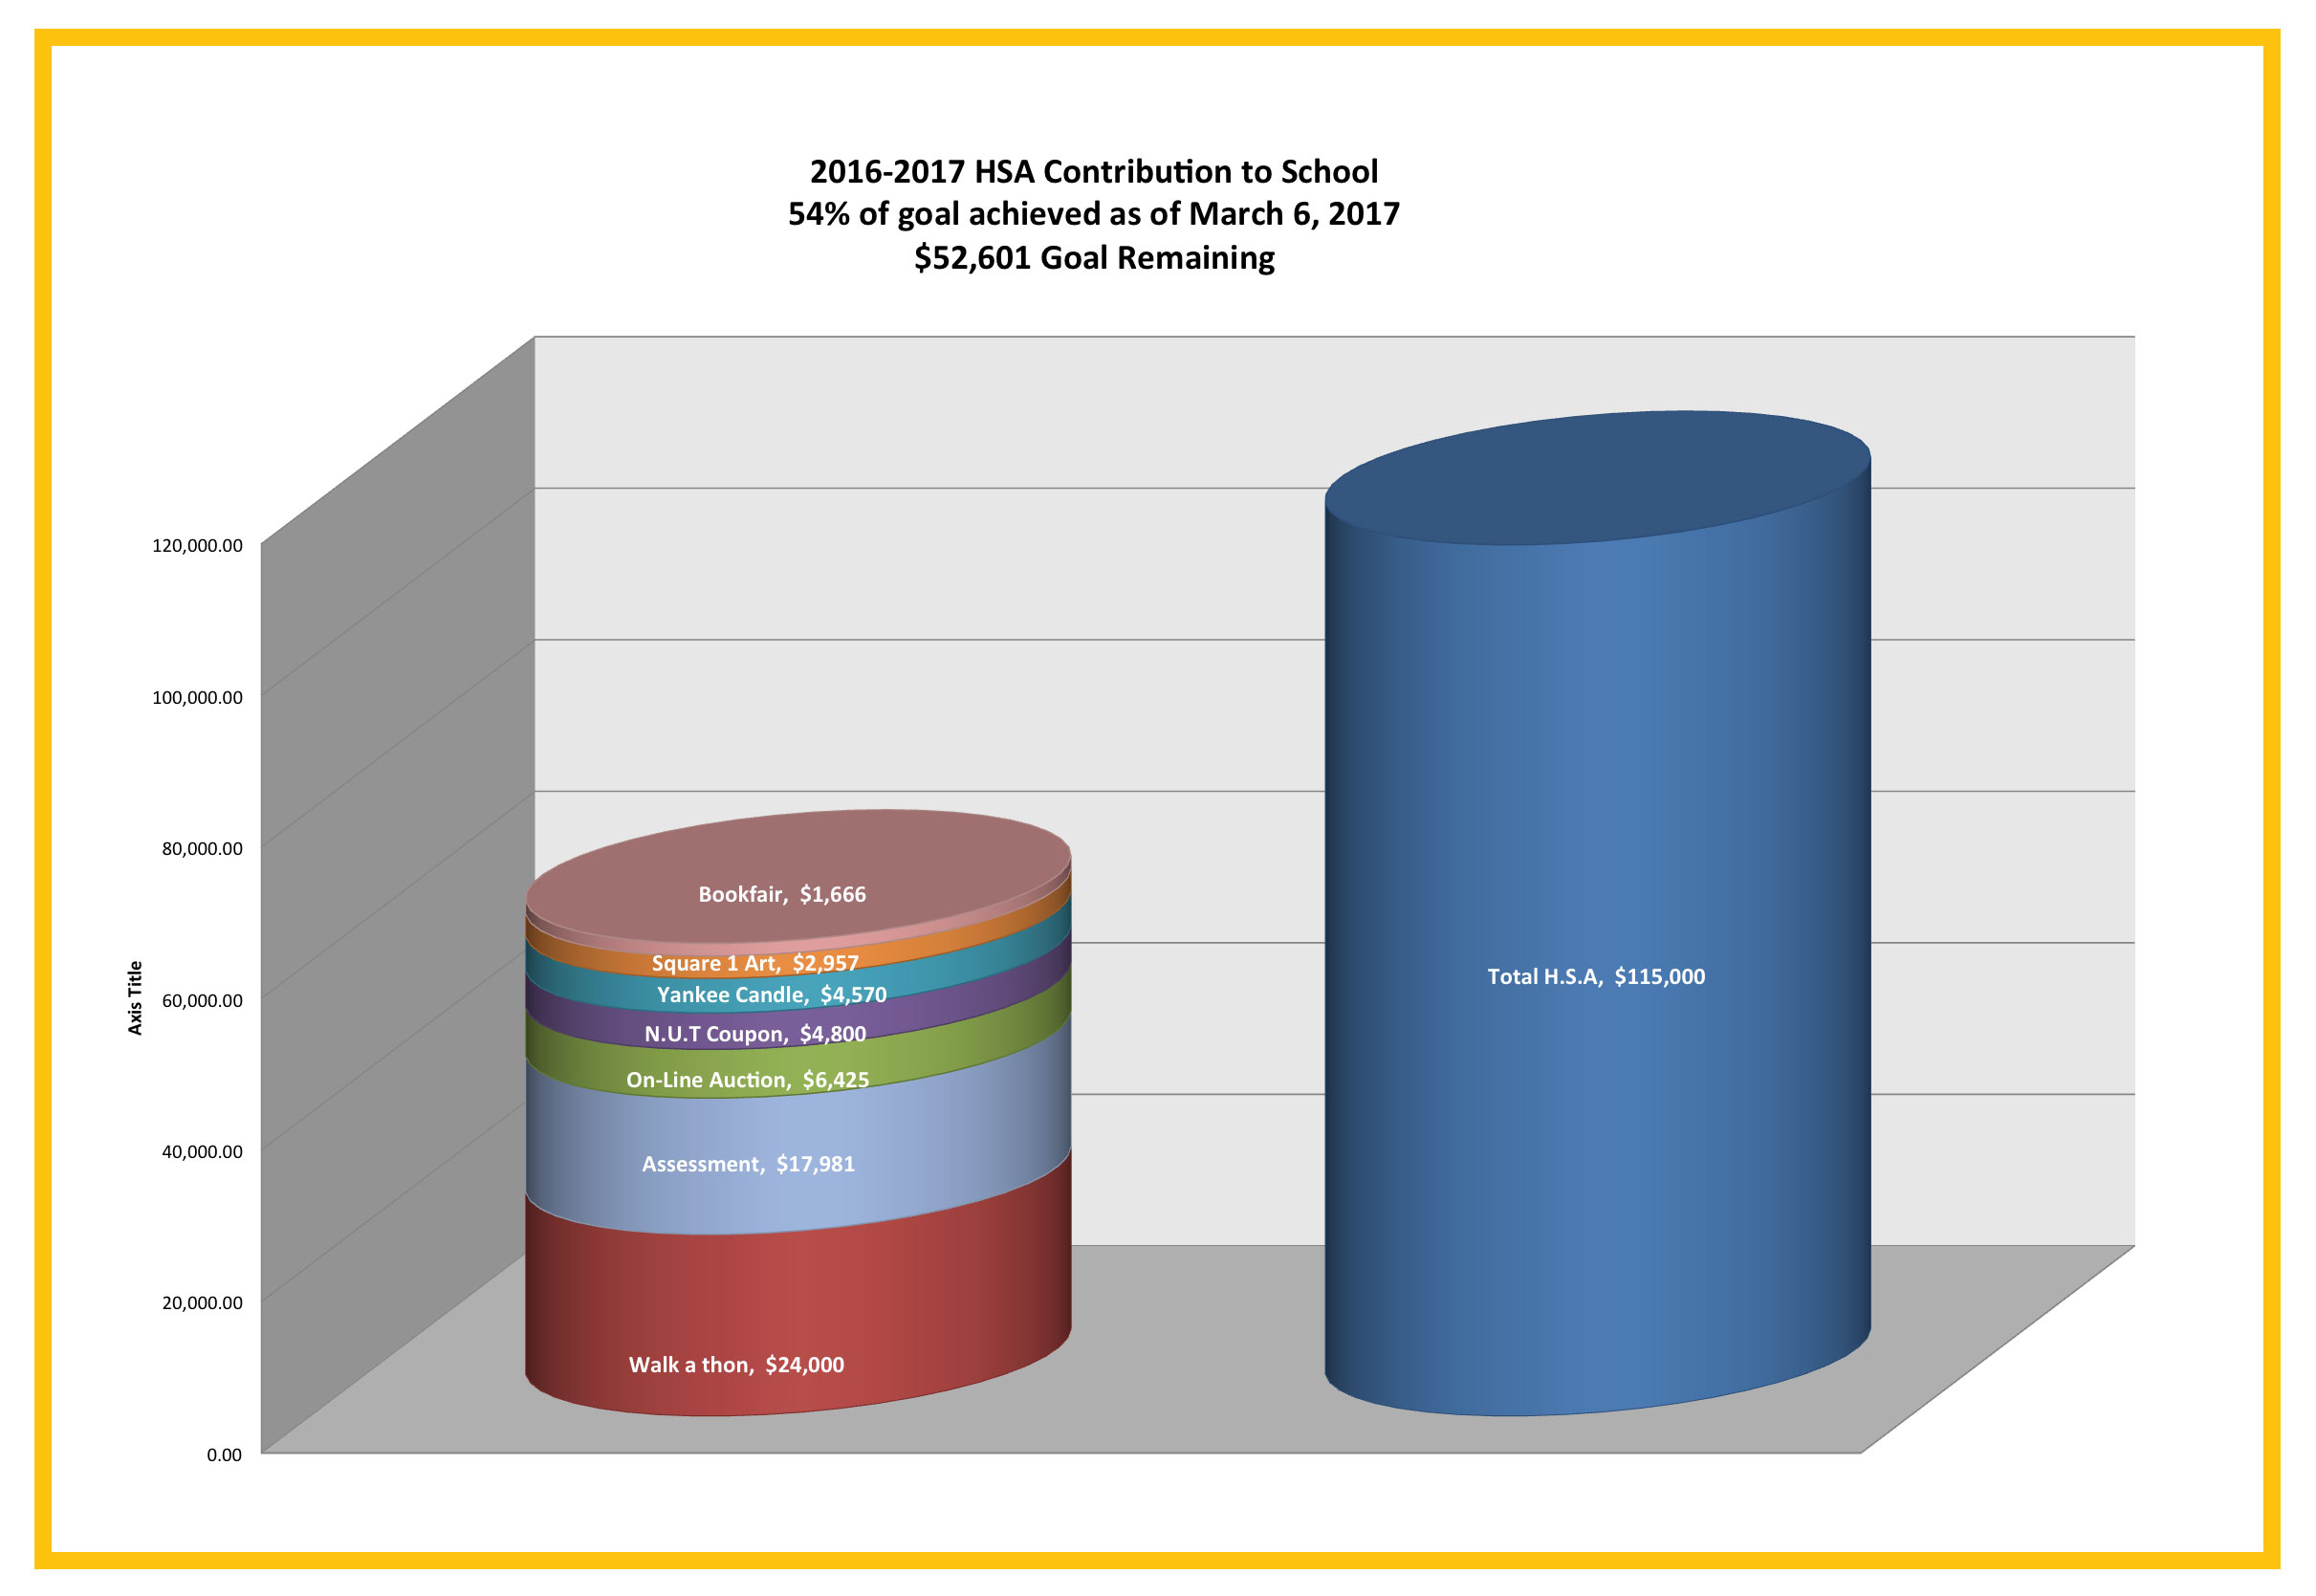 2016-2017 HSA Contributions to School Chart showing 54% of goal achieved as of March 6, 2017.